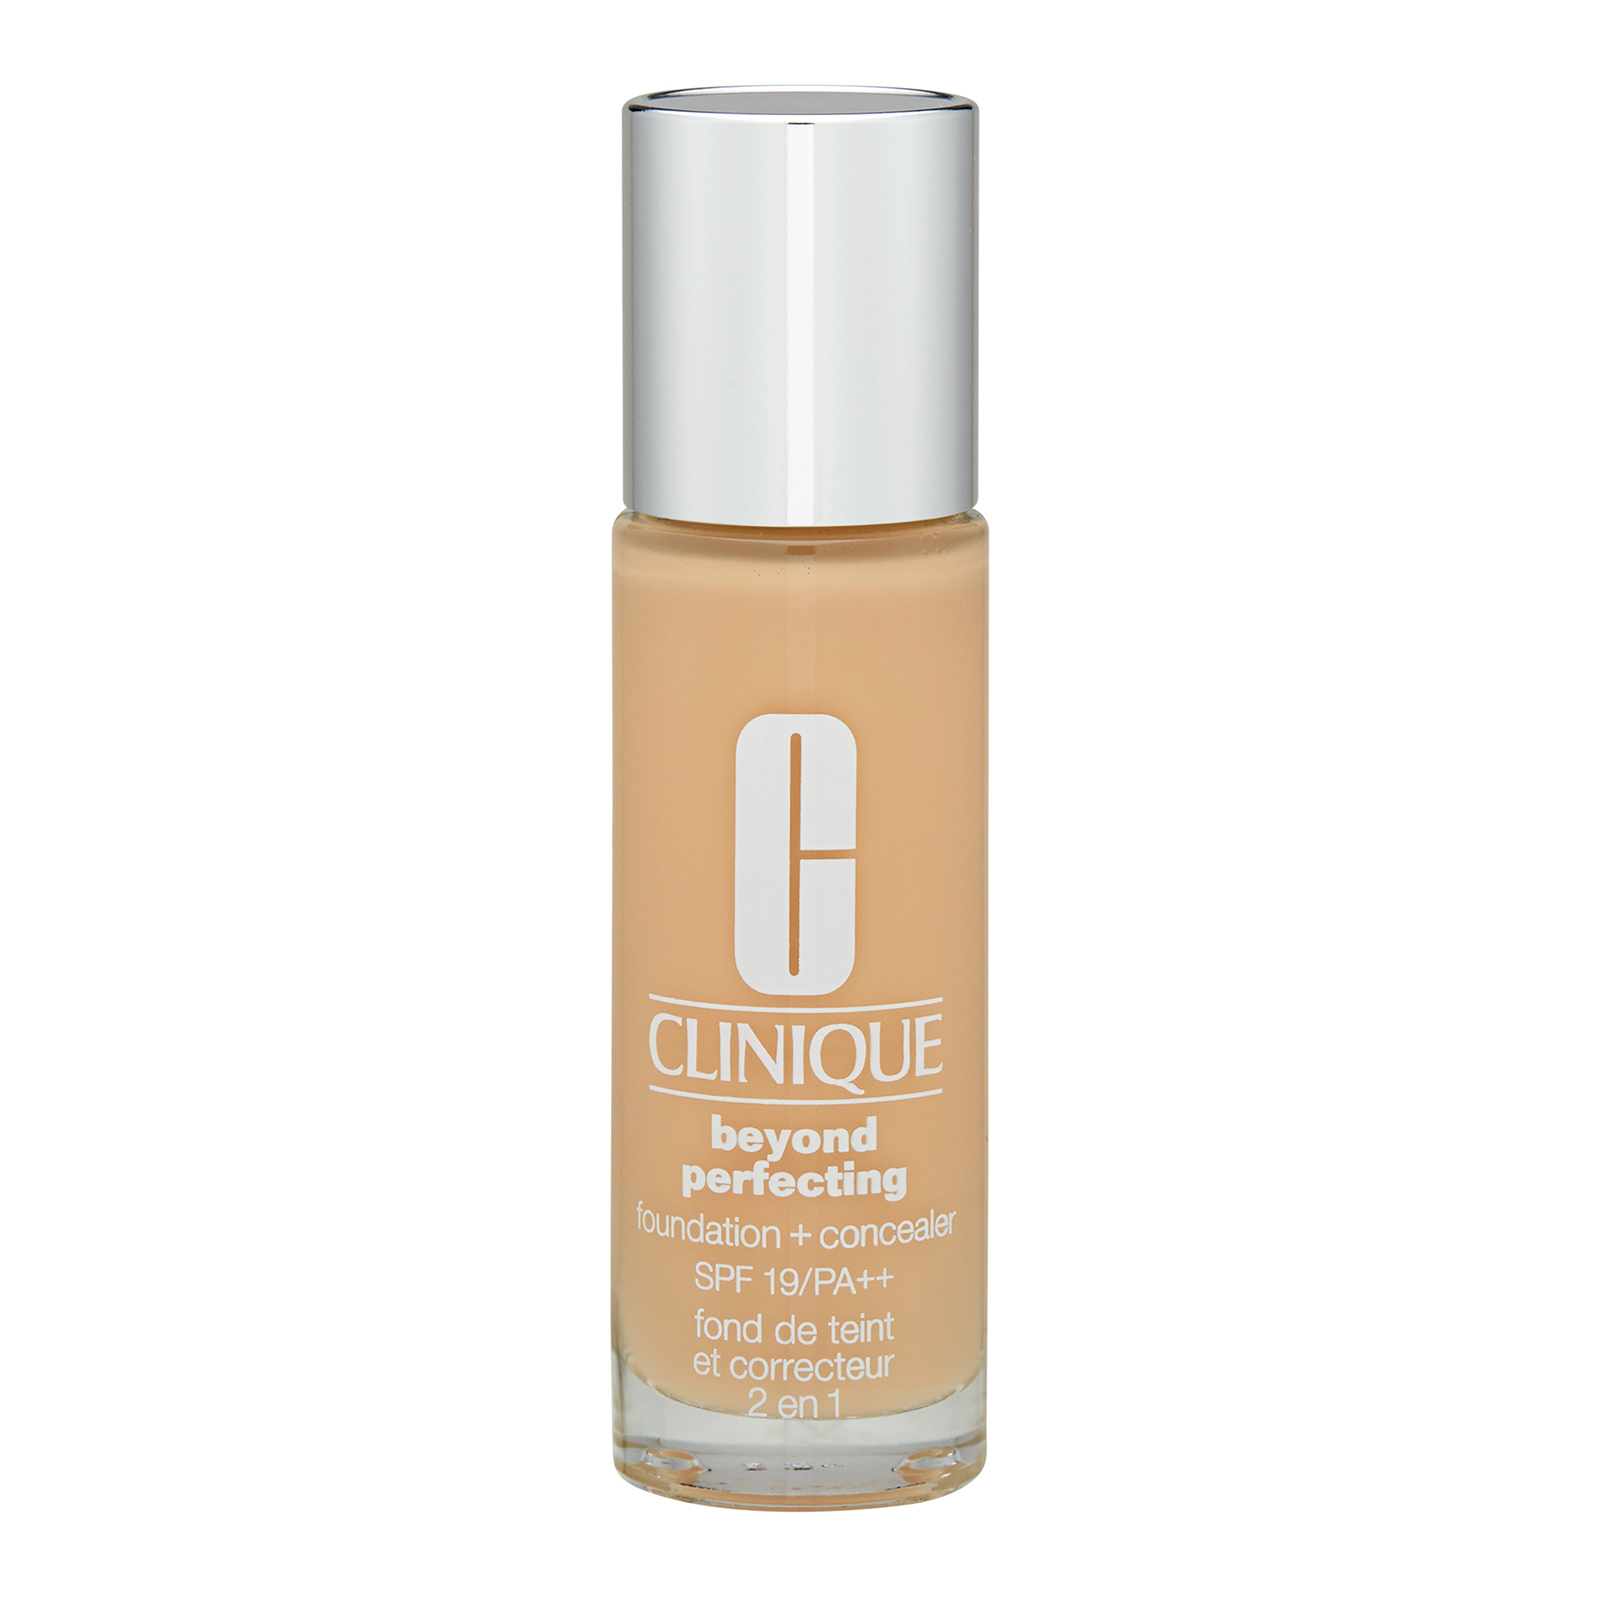 Clinique  Beyond Perfecting Foundation + Concealer SPF19 / PA++ 61 Ivory (F-N), 1oz, 30ml